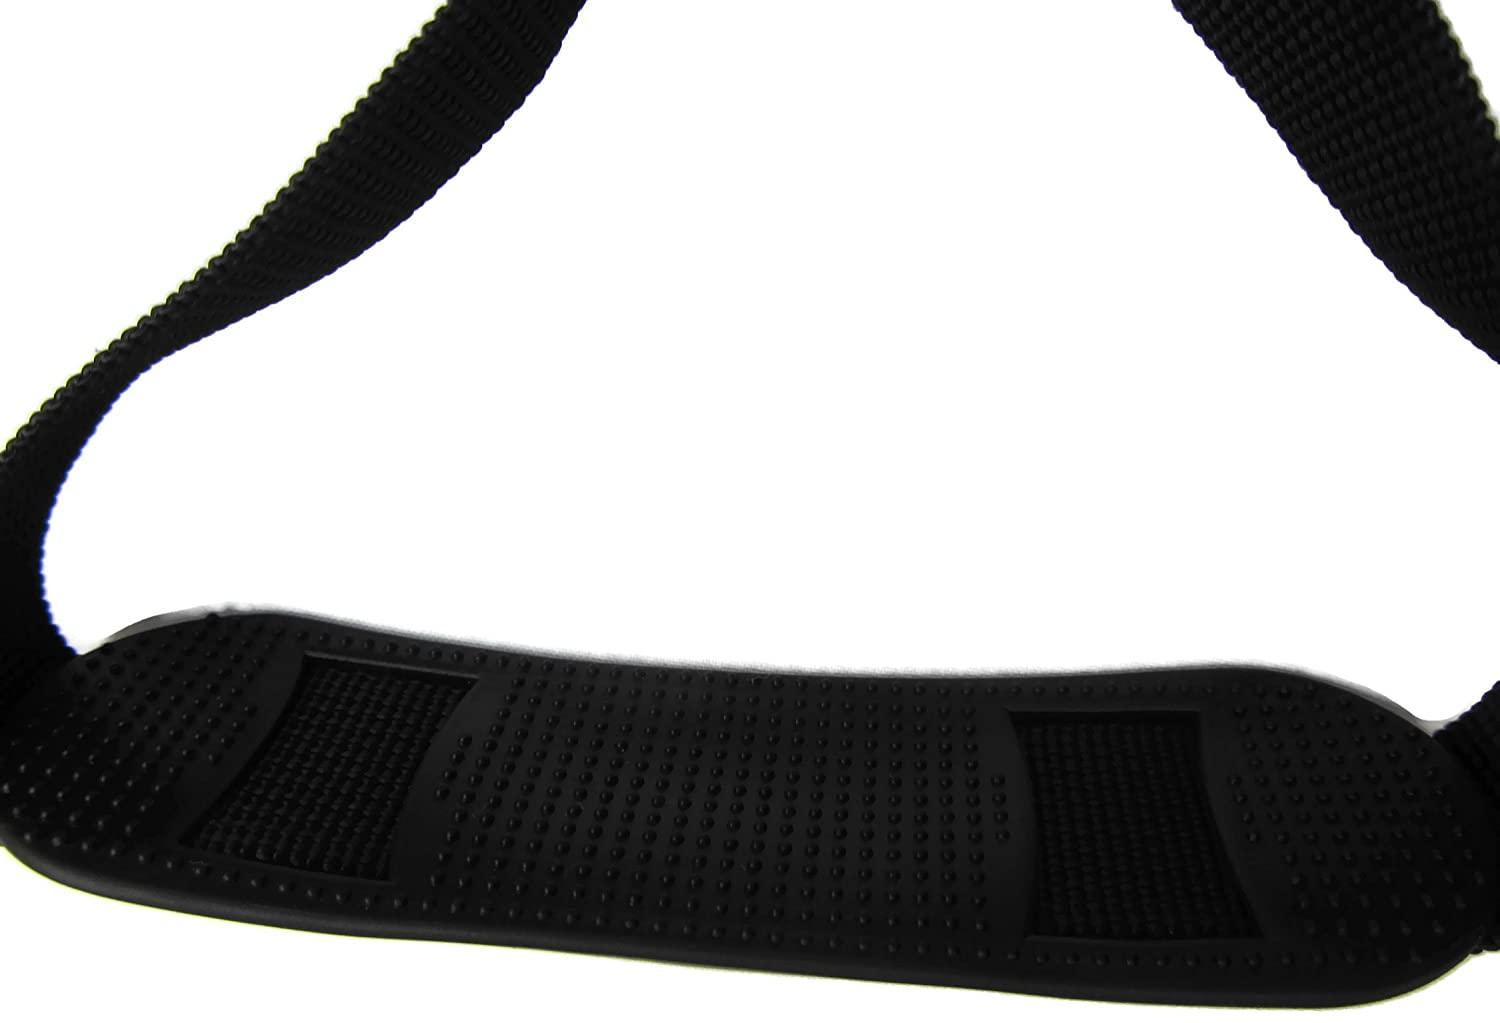 with Adjustable Straps AB Handles POWER Olympic Gymnastics Strap//Handles Pull-Ups Hanging Gym Straps//Handles for Men//Women